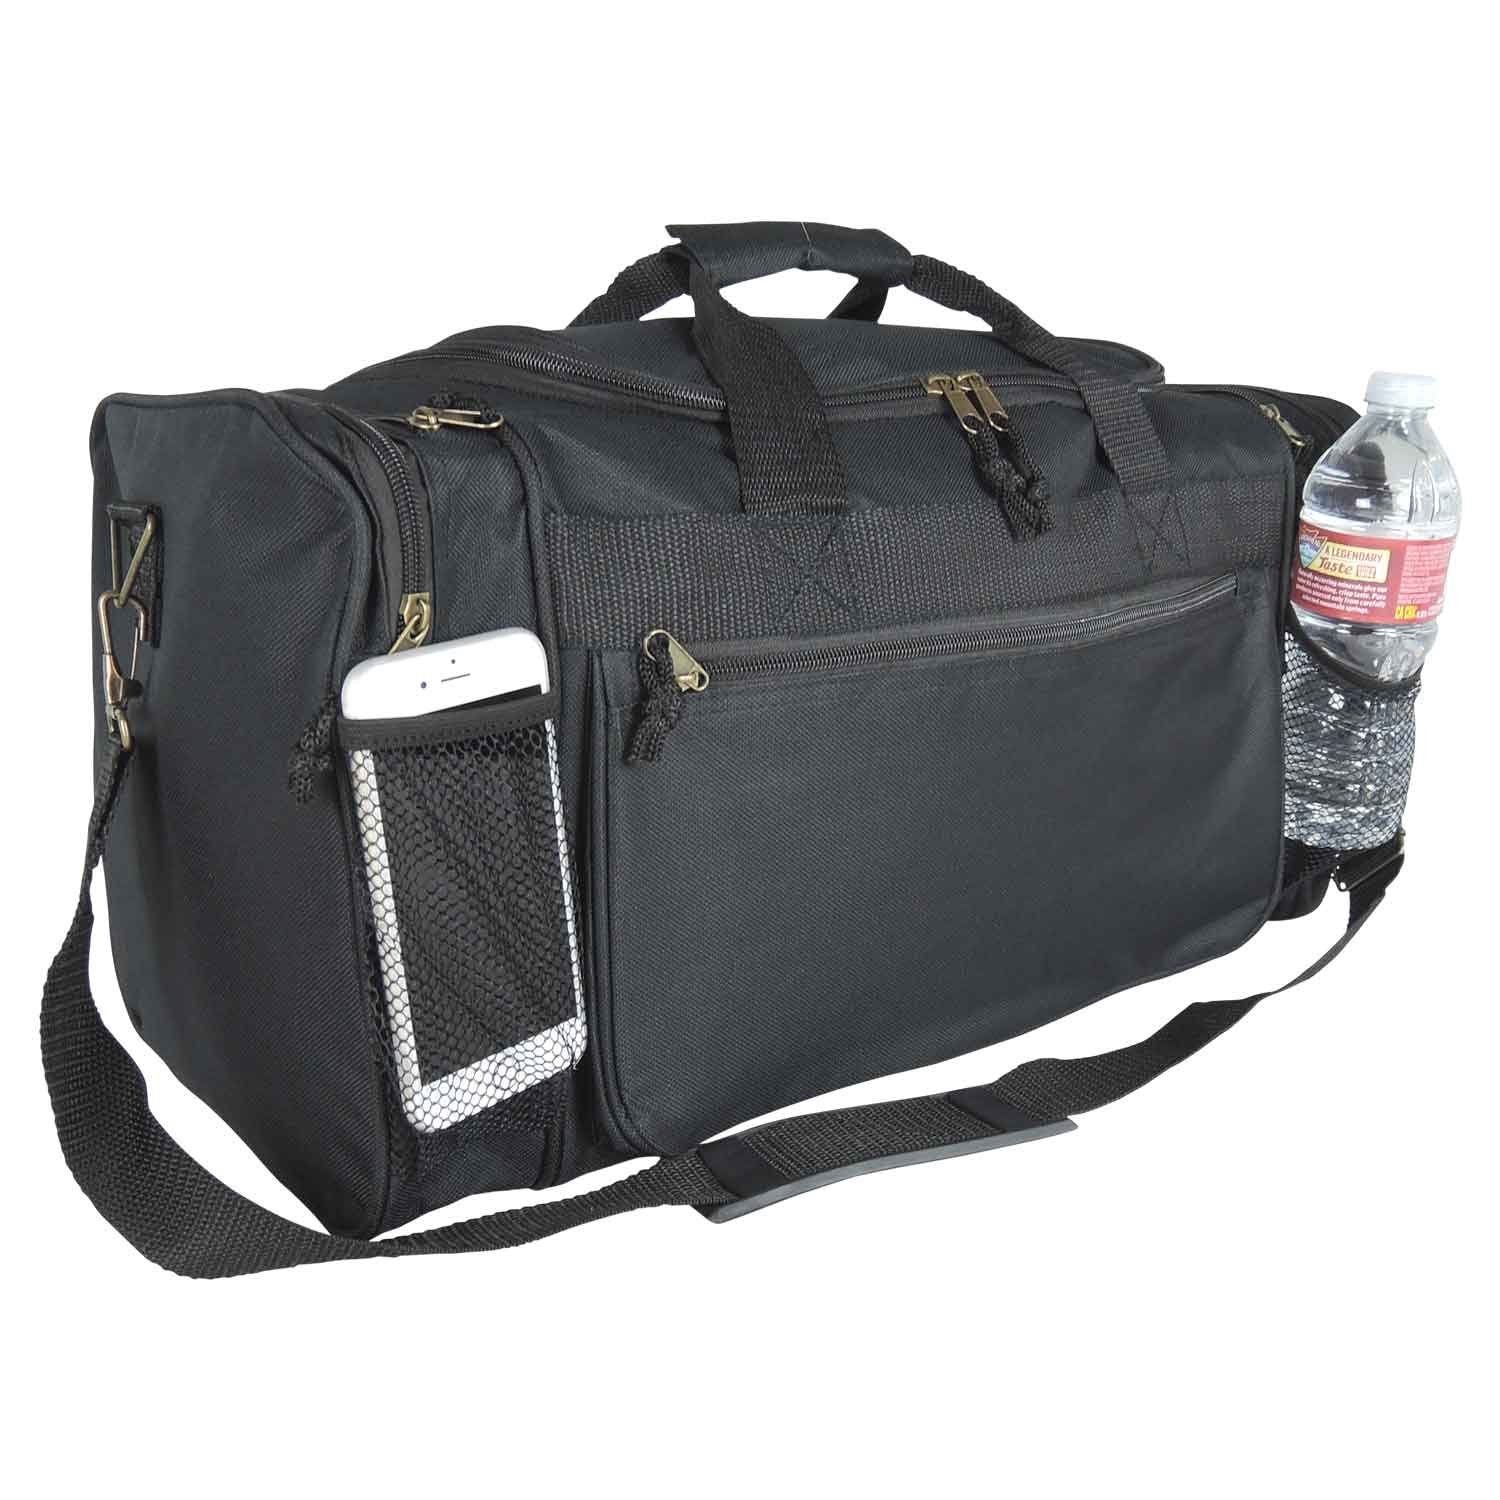 Amazon Dalix 20 Inch Sports Duffle Bag With Mesh And Valuables Pockets Black Outdoors